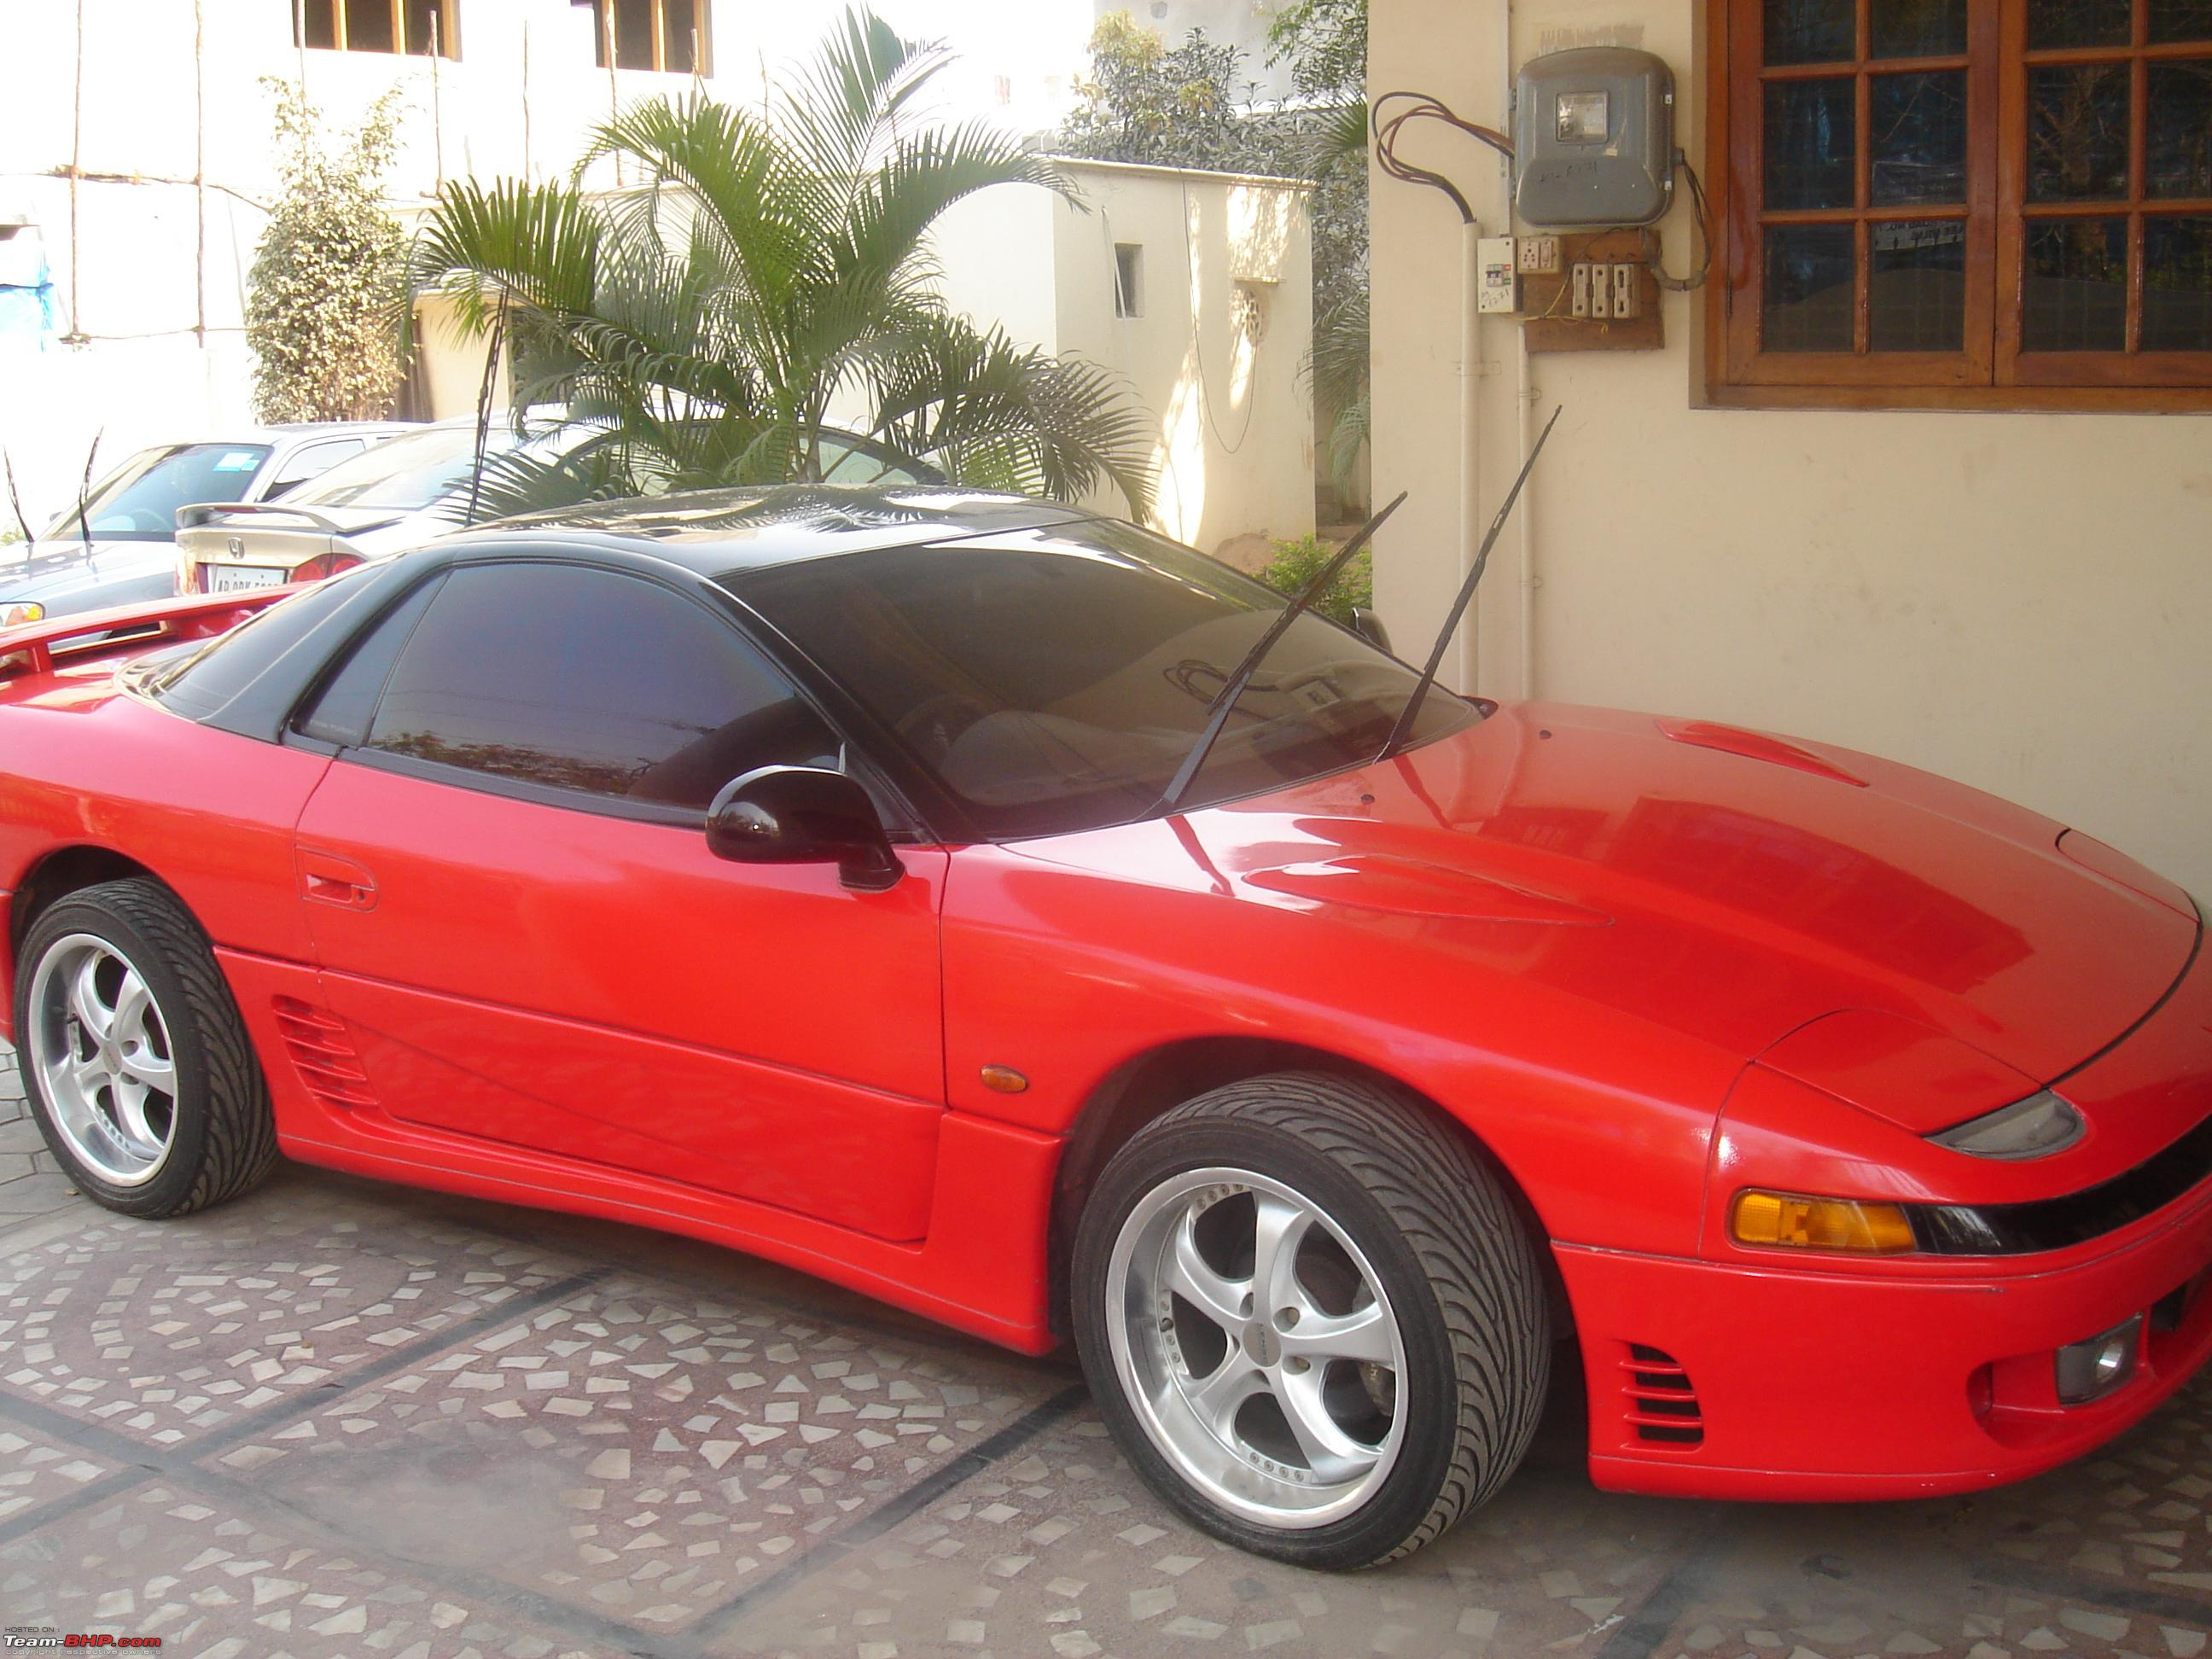 mitsubishi 3000 gt (z16a) 1994 images #7